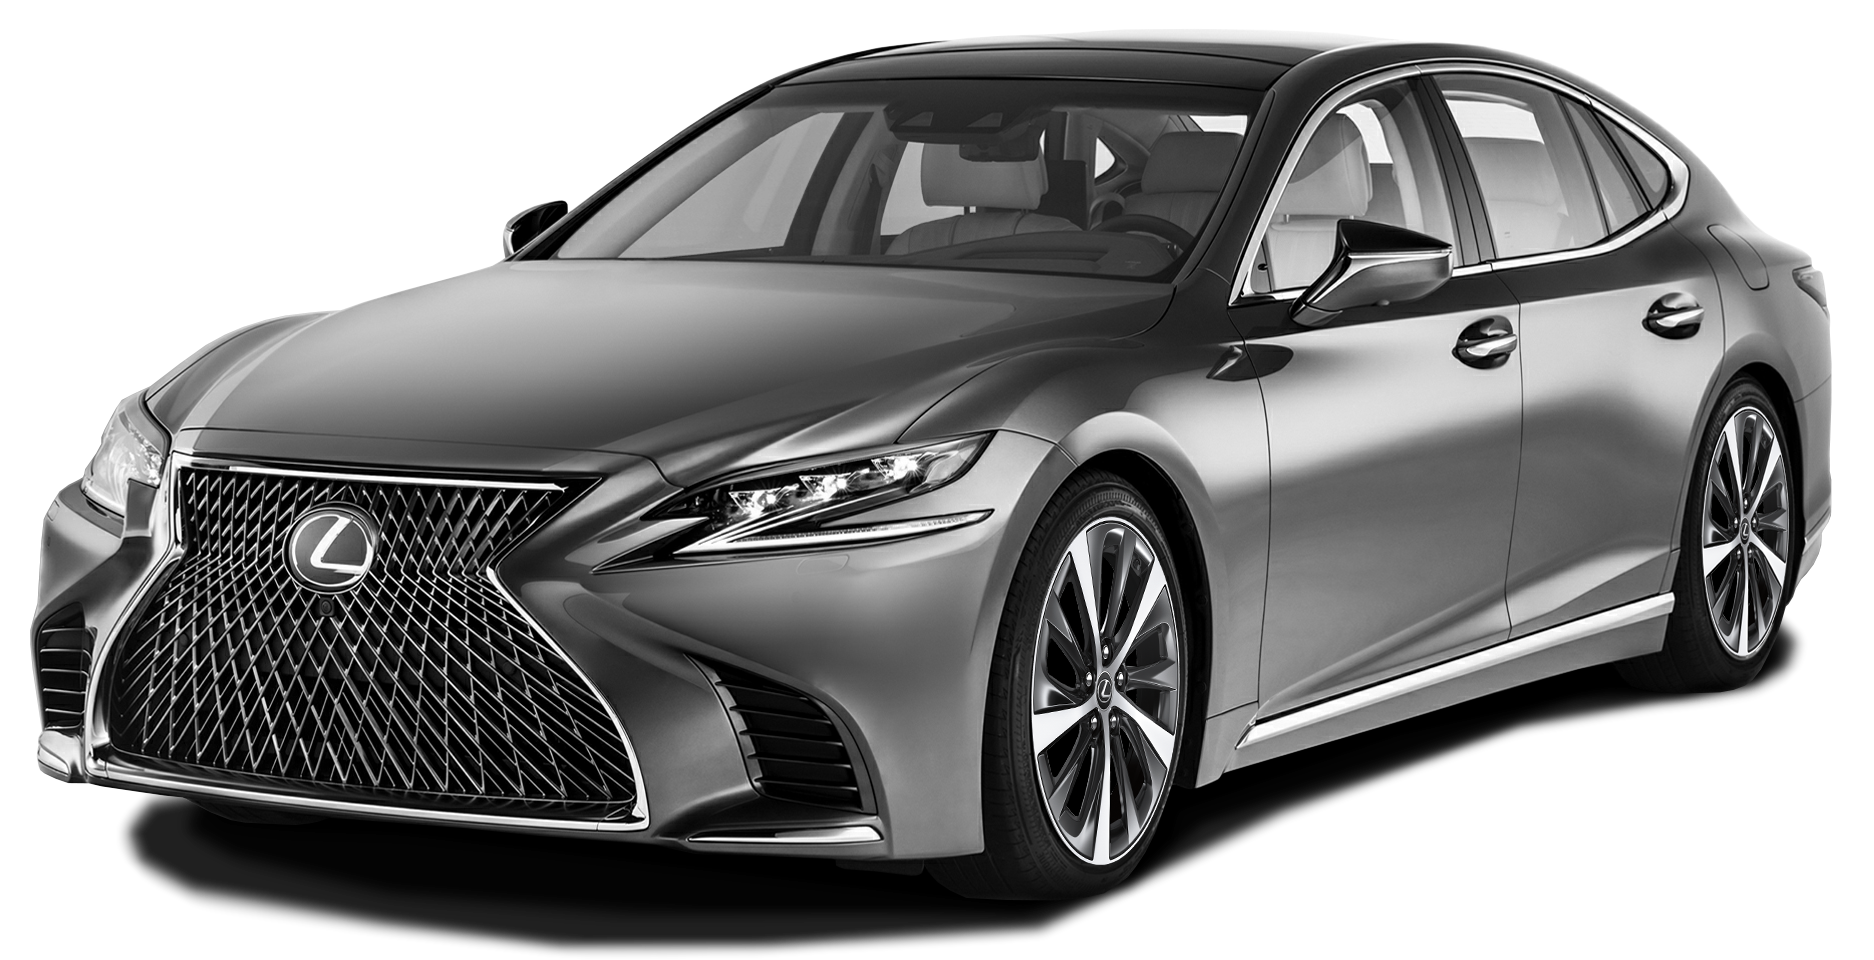 2018 lexus ls 500 incentives specials offers in haverford pa. Black Bedroom Furniture Sets. Home Design Ideas